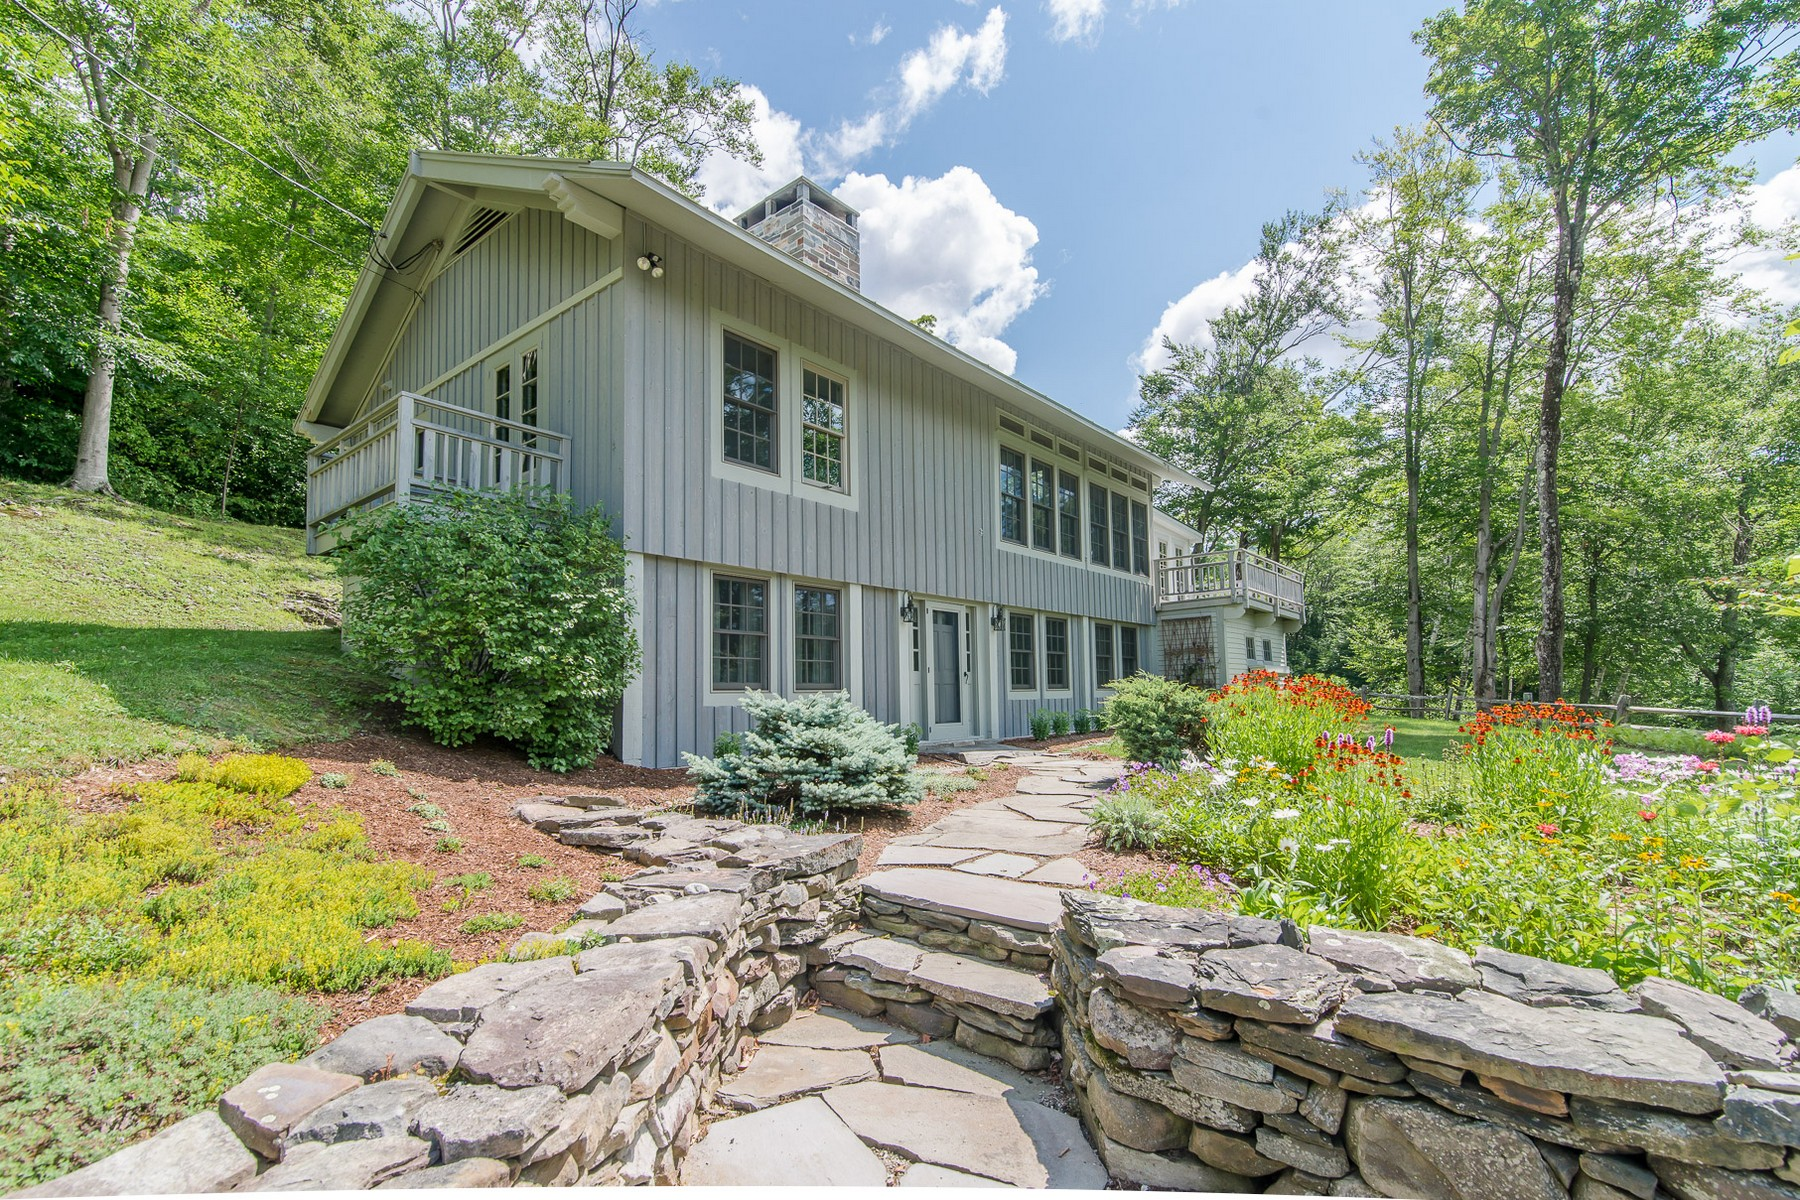 Single Family Home for Sale at Decorator Designs 3452 Green Hill Rd Danby, 05739 United States